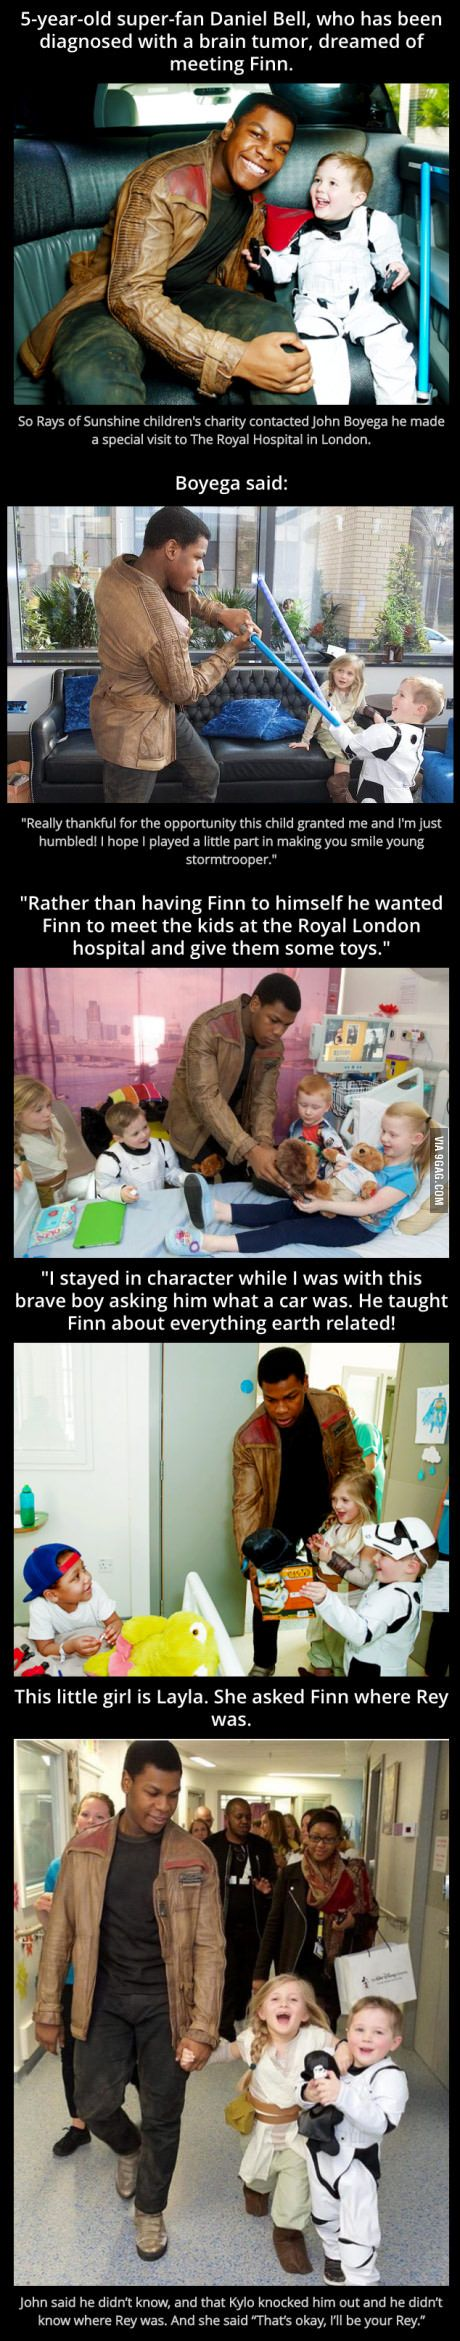 John Boyega Visits Sick Children While Dressed as Finn